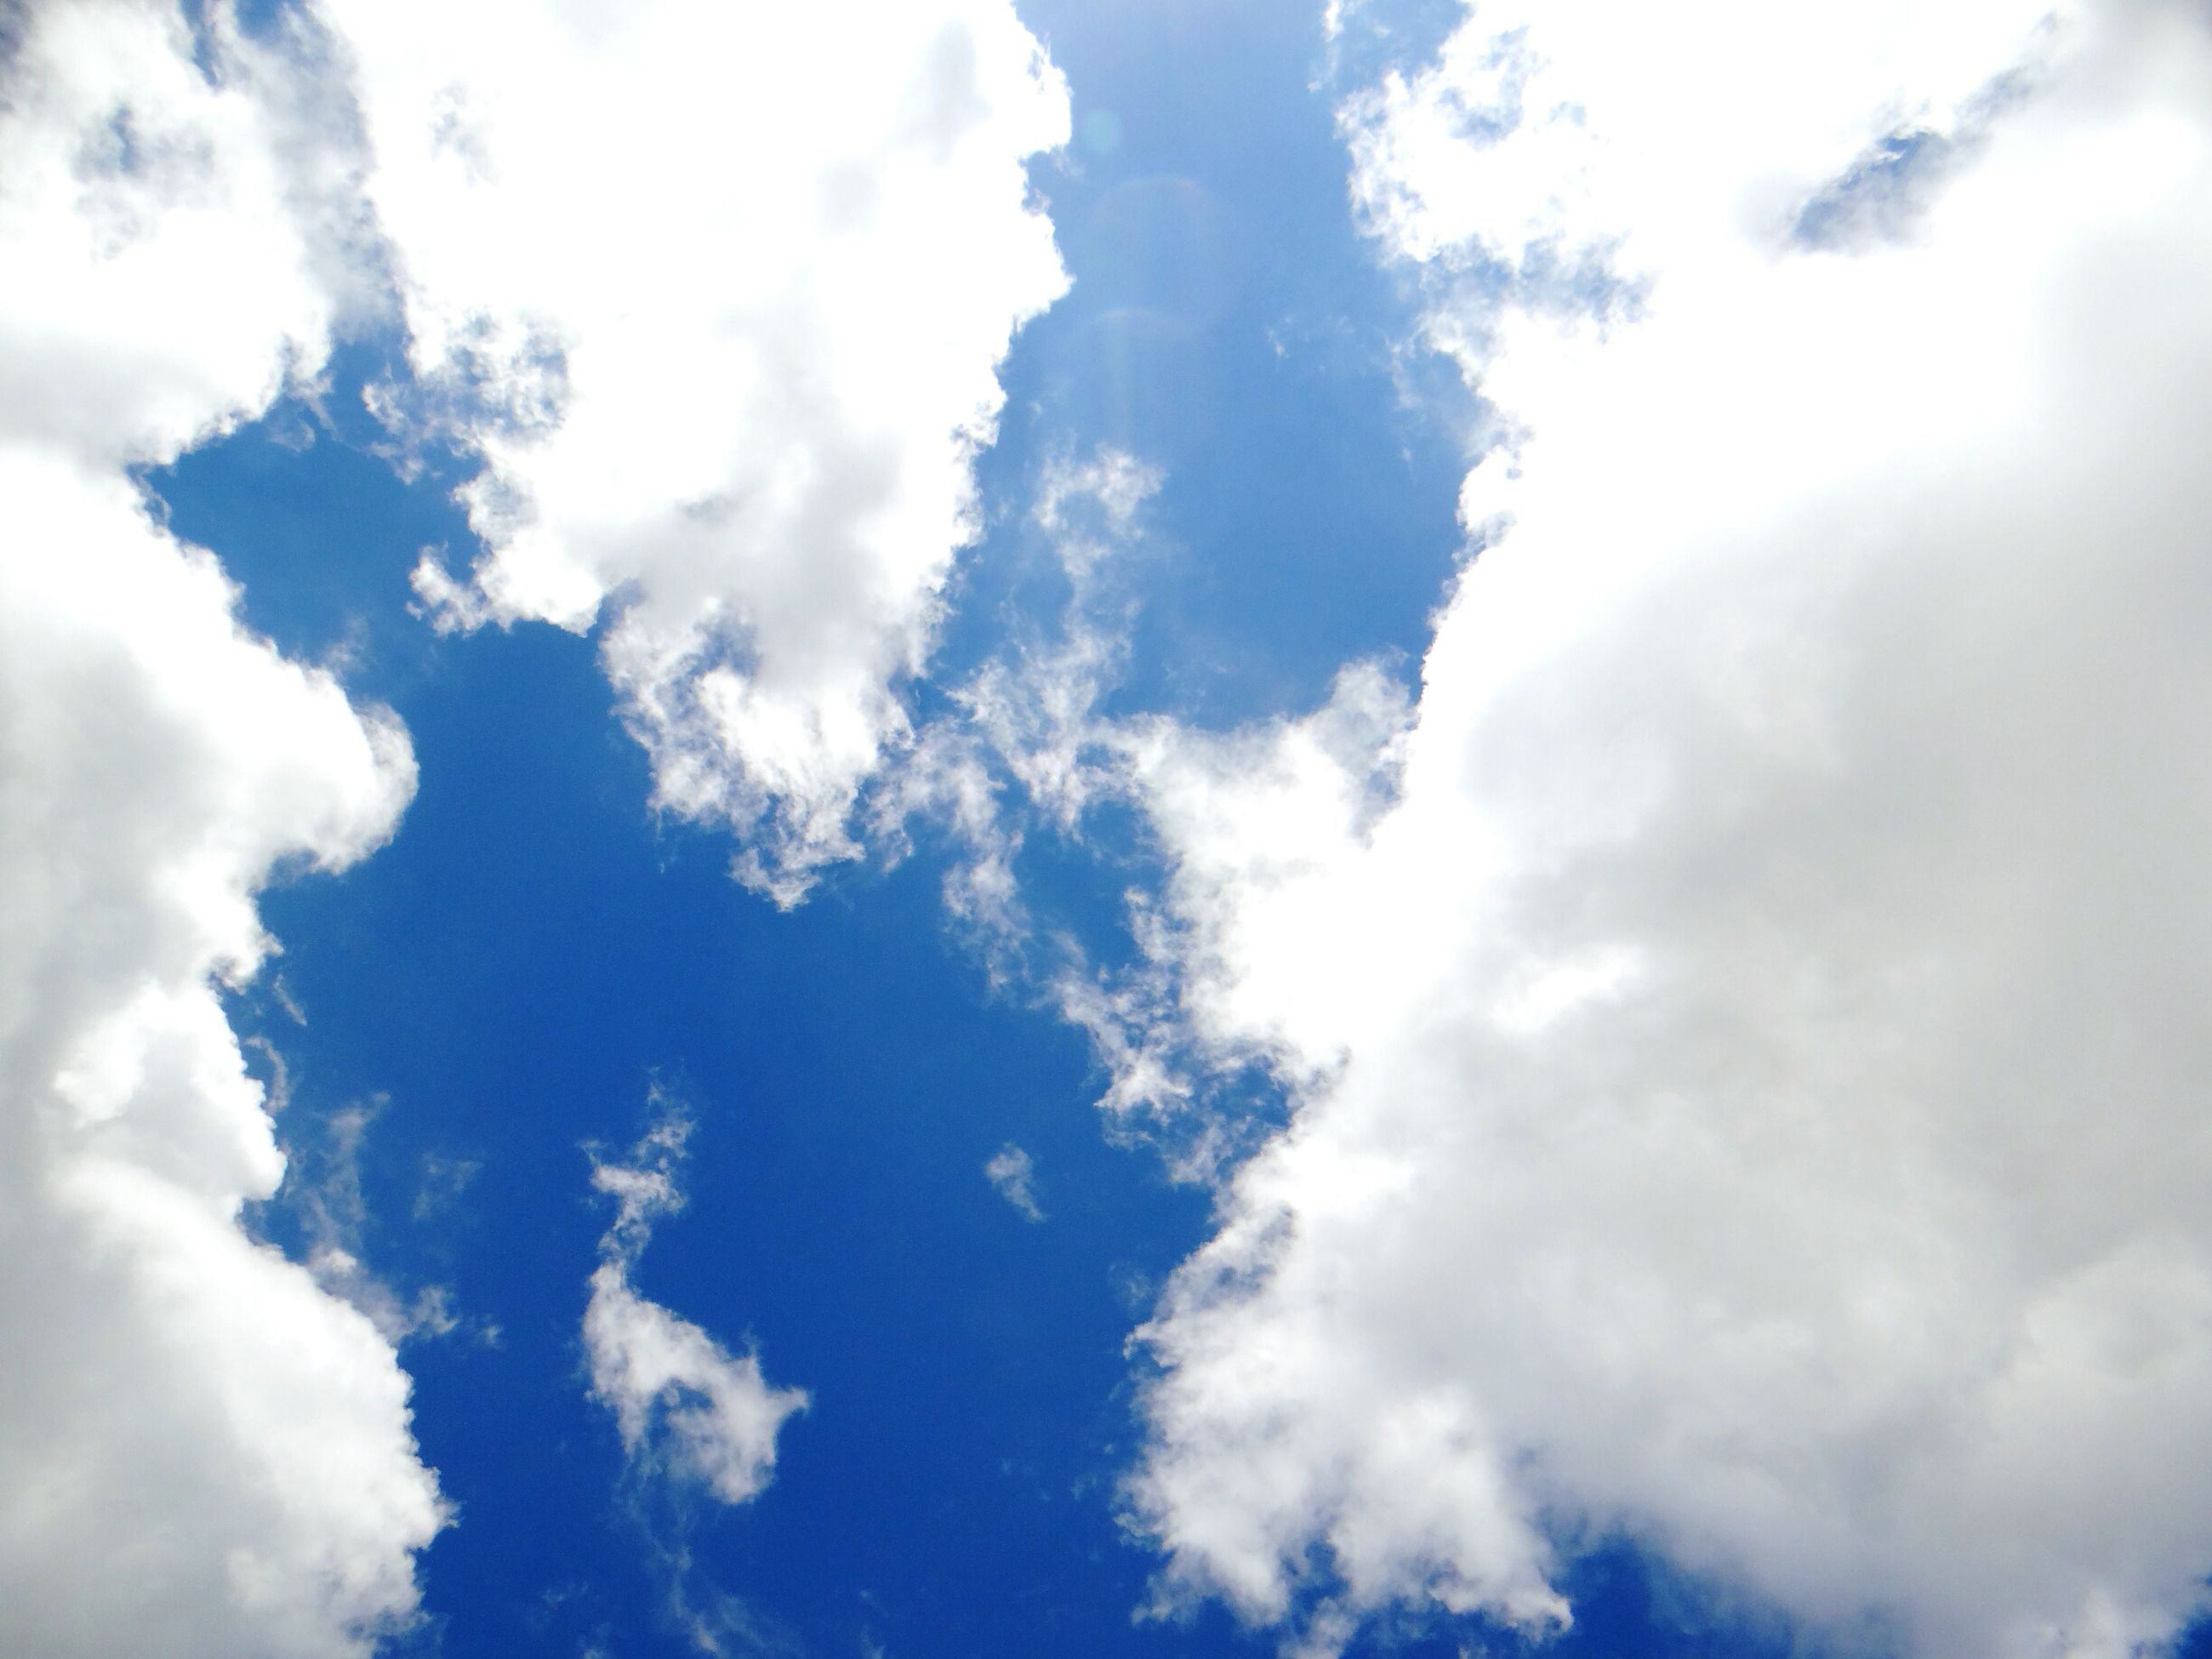 sky, low angle view, cloud - sky, cloudy, sky only, beauty in nature, tranquility, scenics, cloudscape, nature, cloud, blue, tranquil scene, backgrounds, full frame, white color, idyllic, day, outdoors, no people